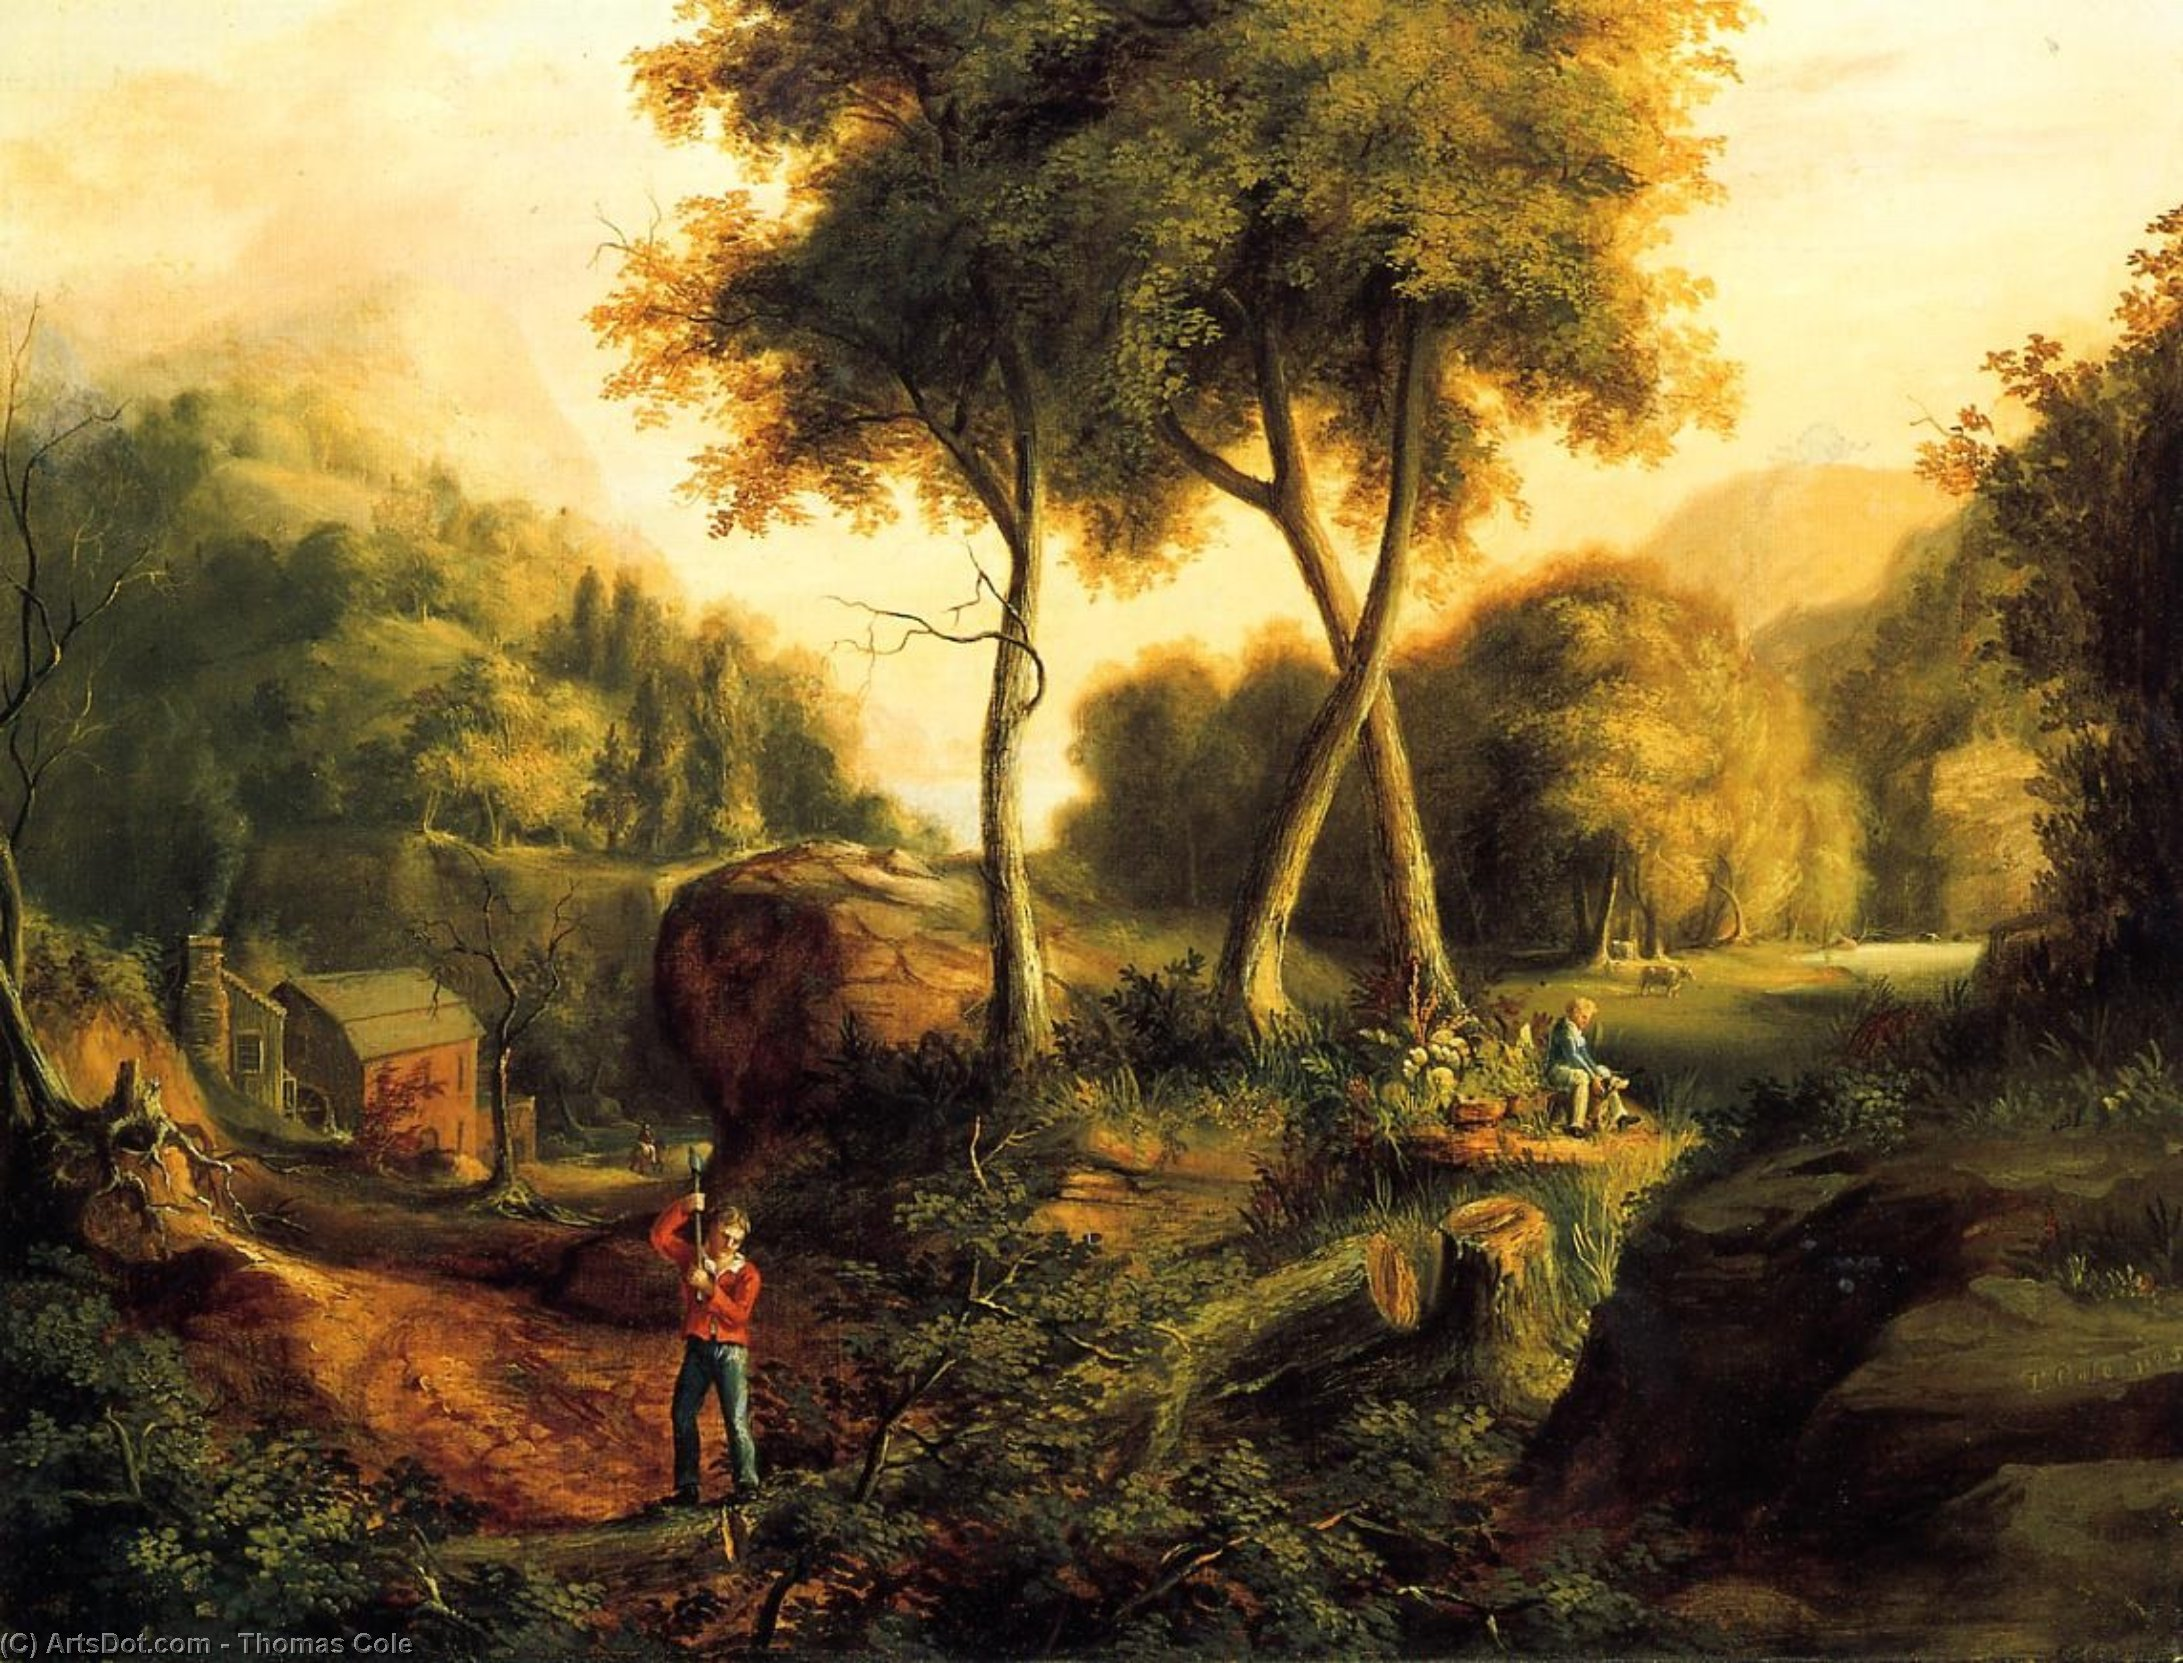 Landscape, Oil On Canvas by Thomas Cole (1801-1848, United Kingdom)